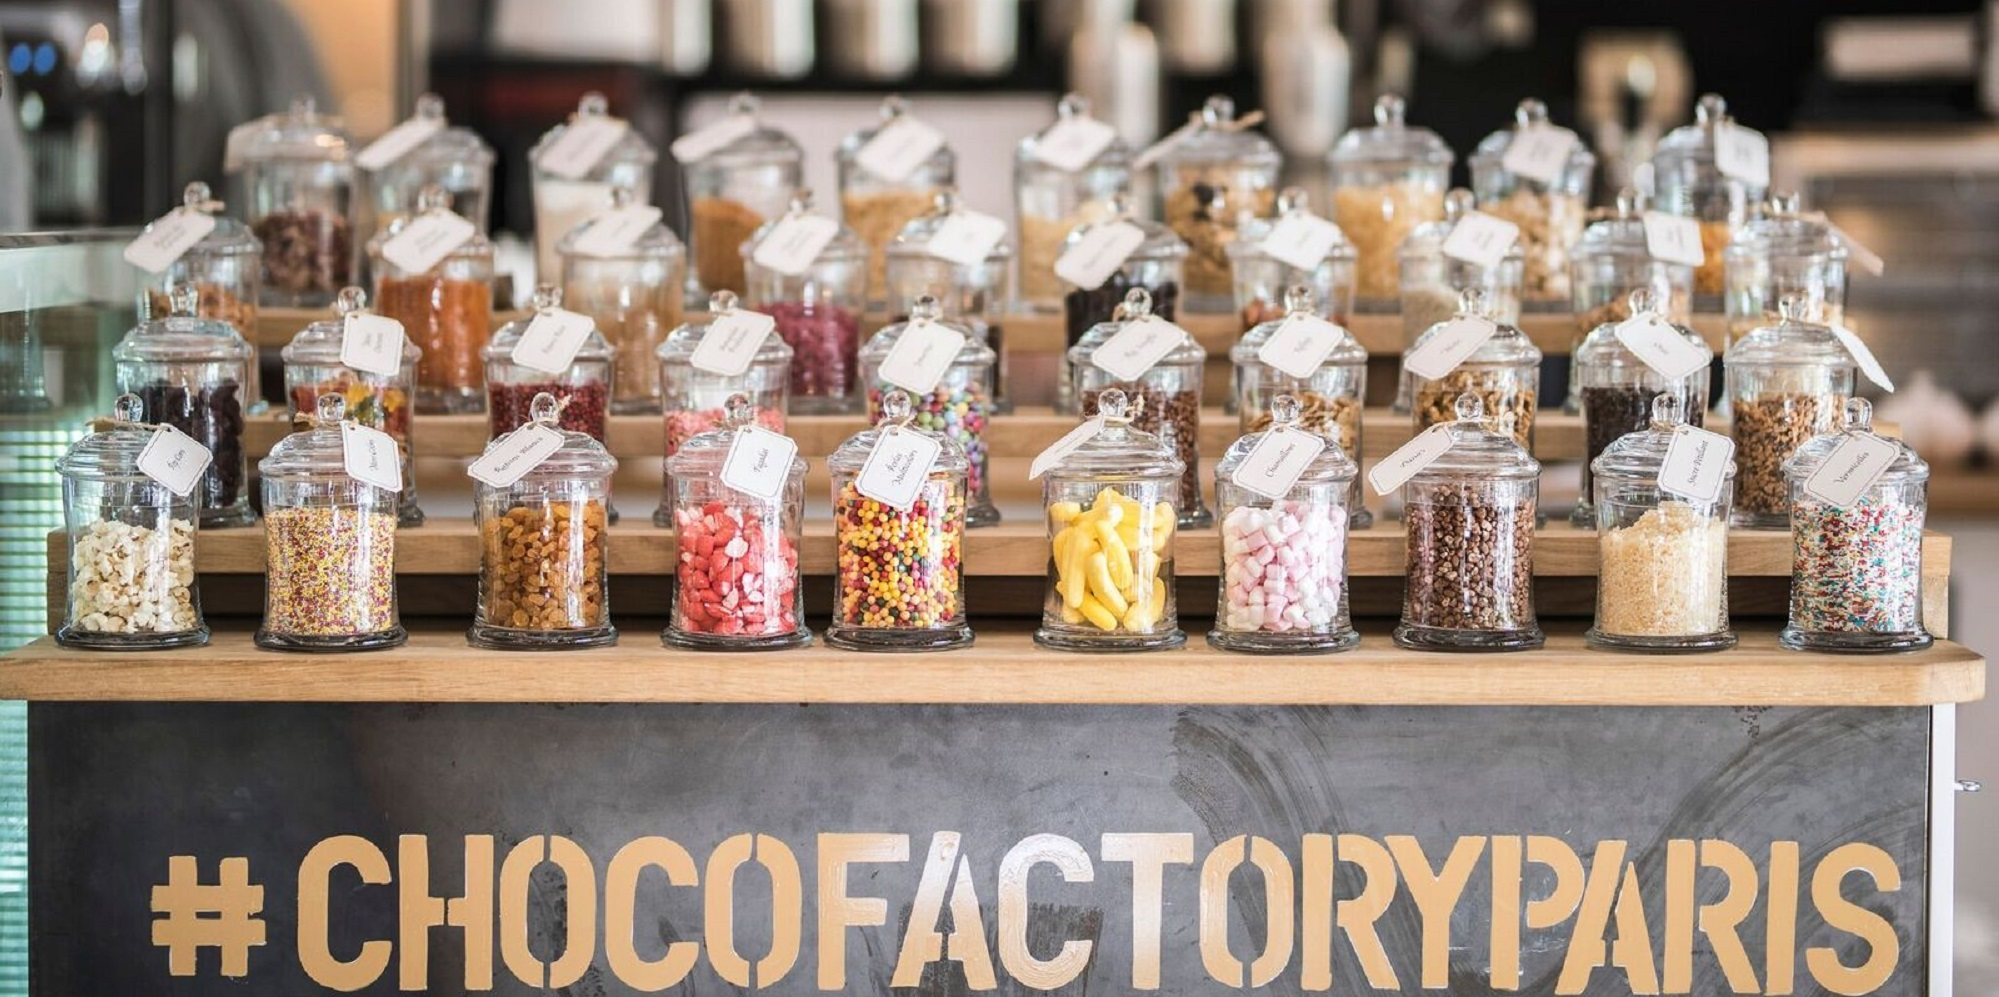 Brunch Choco Factory (75006 Paris)